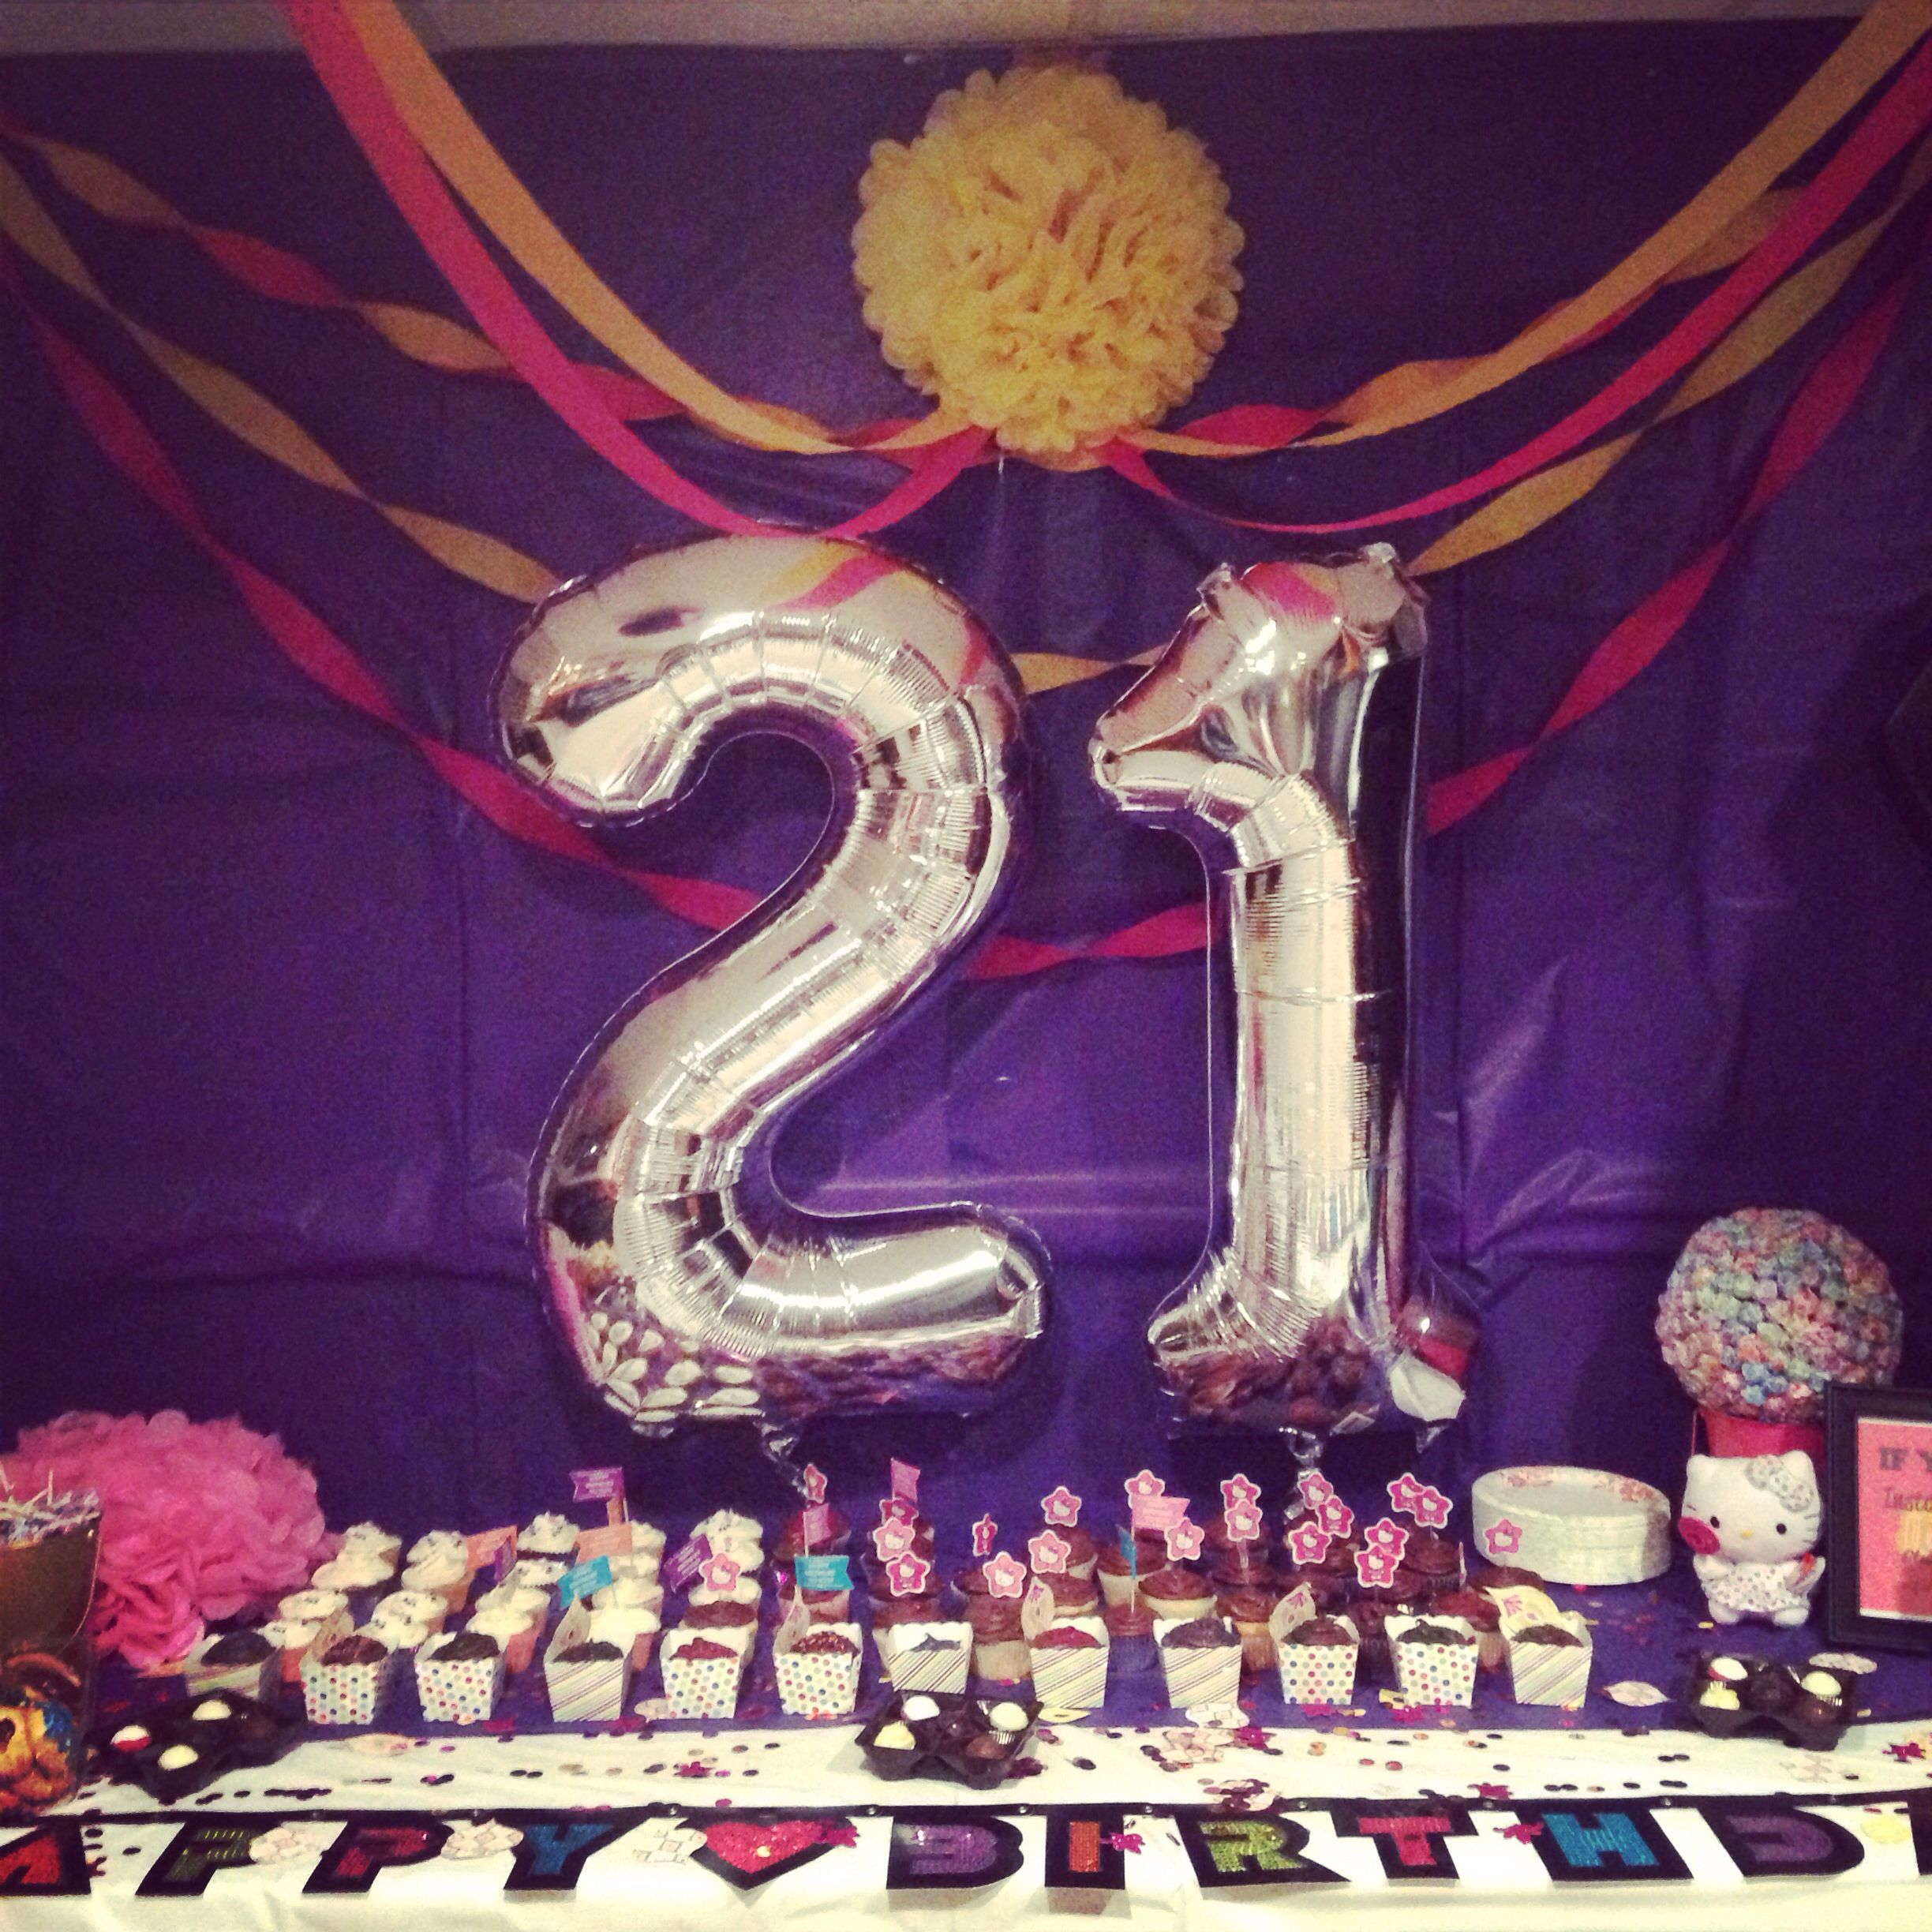 21st birthday decorations party decor pinterest